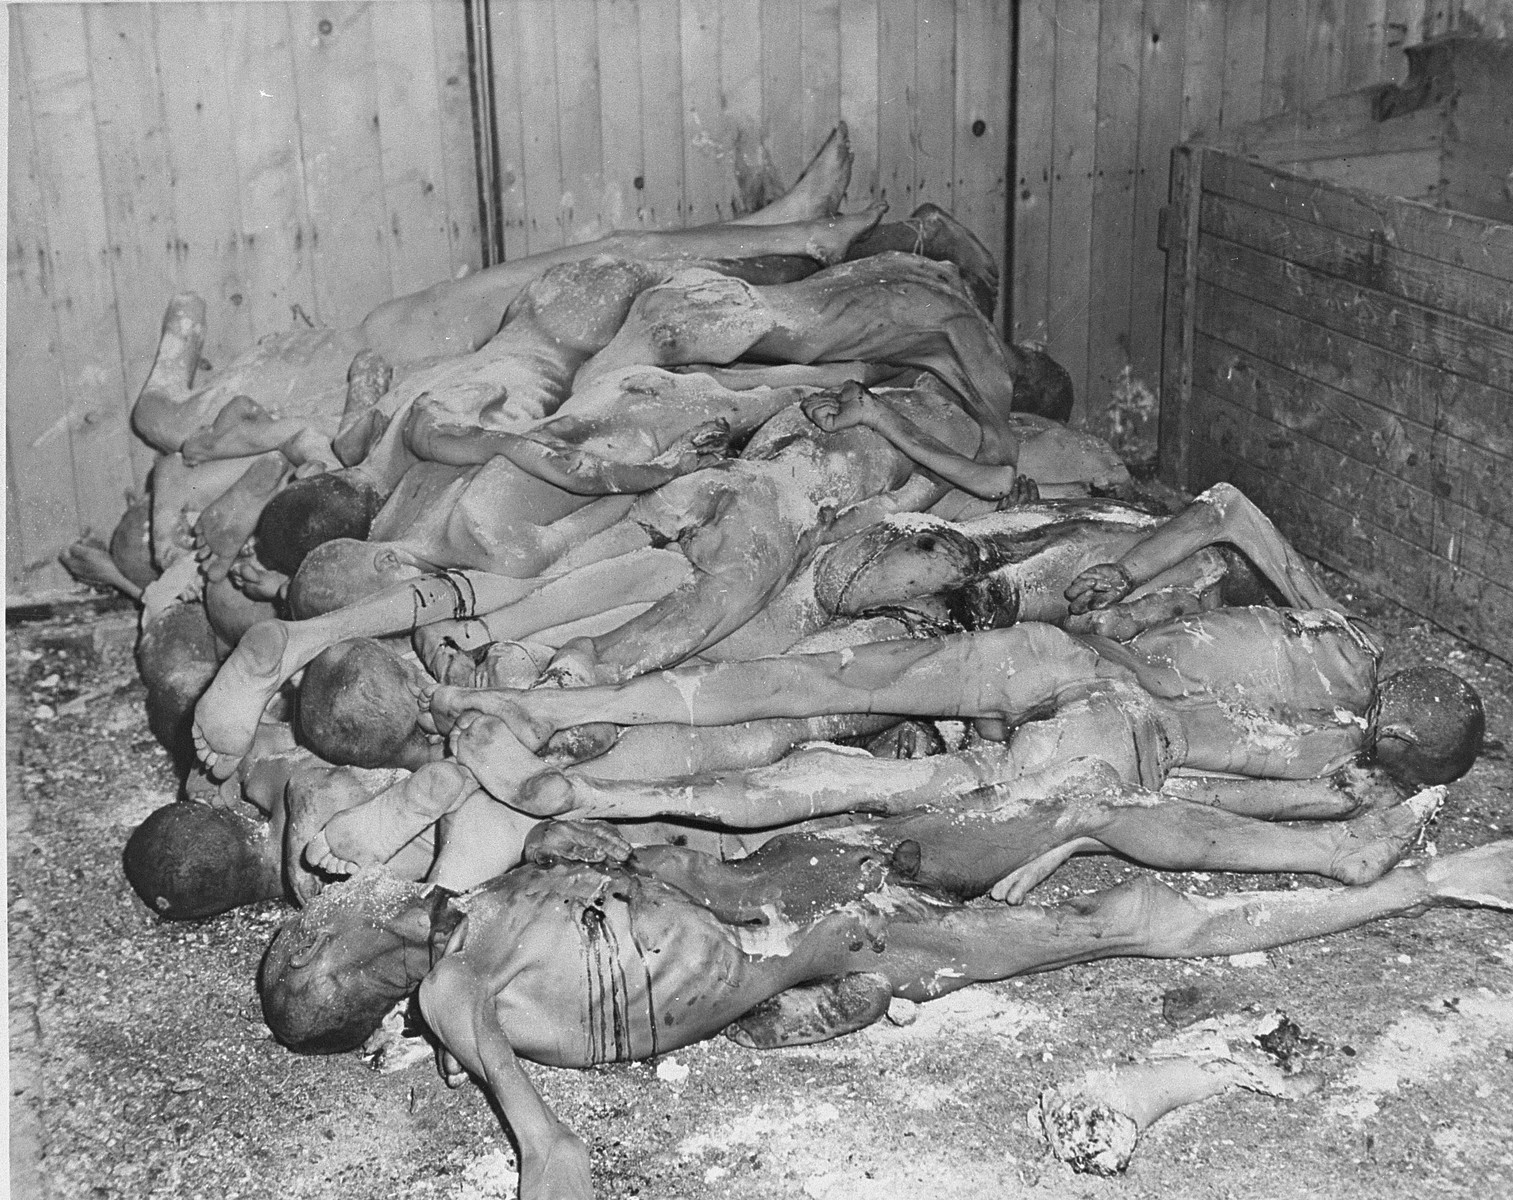 "The bodies of prisoners lie stacked in a shed in the Ohrdruf concentration camp.    The original caption reads ""These emaciated, nude corpses, stacked like cord-wood in a bin at the concentration camp at Goth, Germany, tell their own story of the sadism and brutality of the Nazi gaolers.  They are strewn with quicklime in a haphazard attempt to destroy evidence of the crimes.  General Dwight D. Eisenhower, Supreme Allied Commander, viewed the Gotha horrors during a tour of the Third Army Front."""